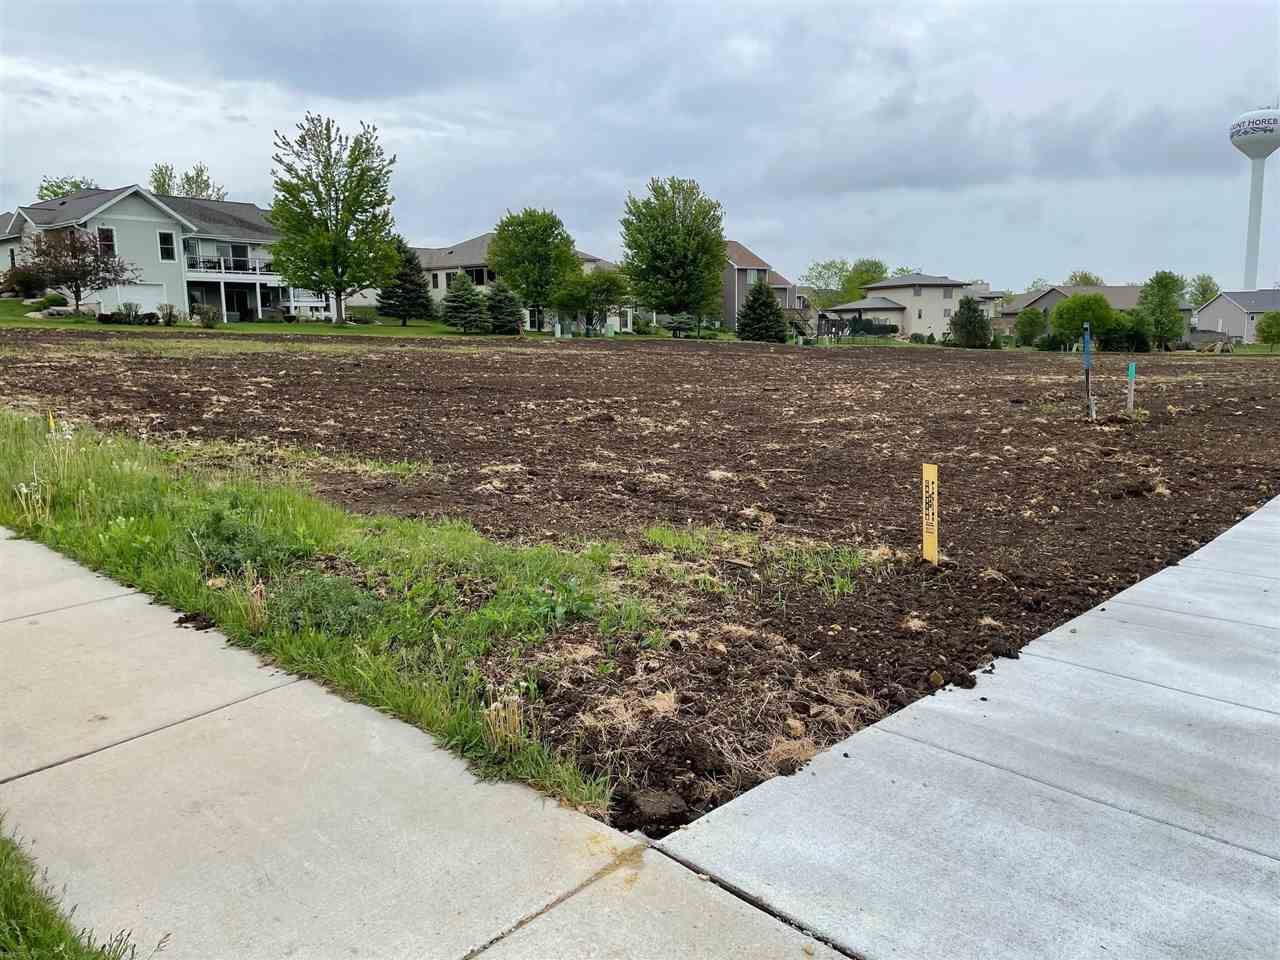 Photo for Lot 121 1800 Grieg Dr, Mount Horeb, WI 53572 (MLS # 1908349)